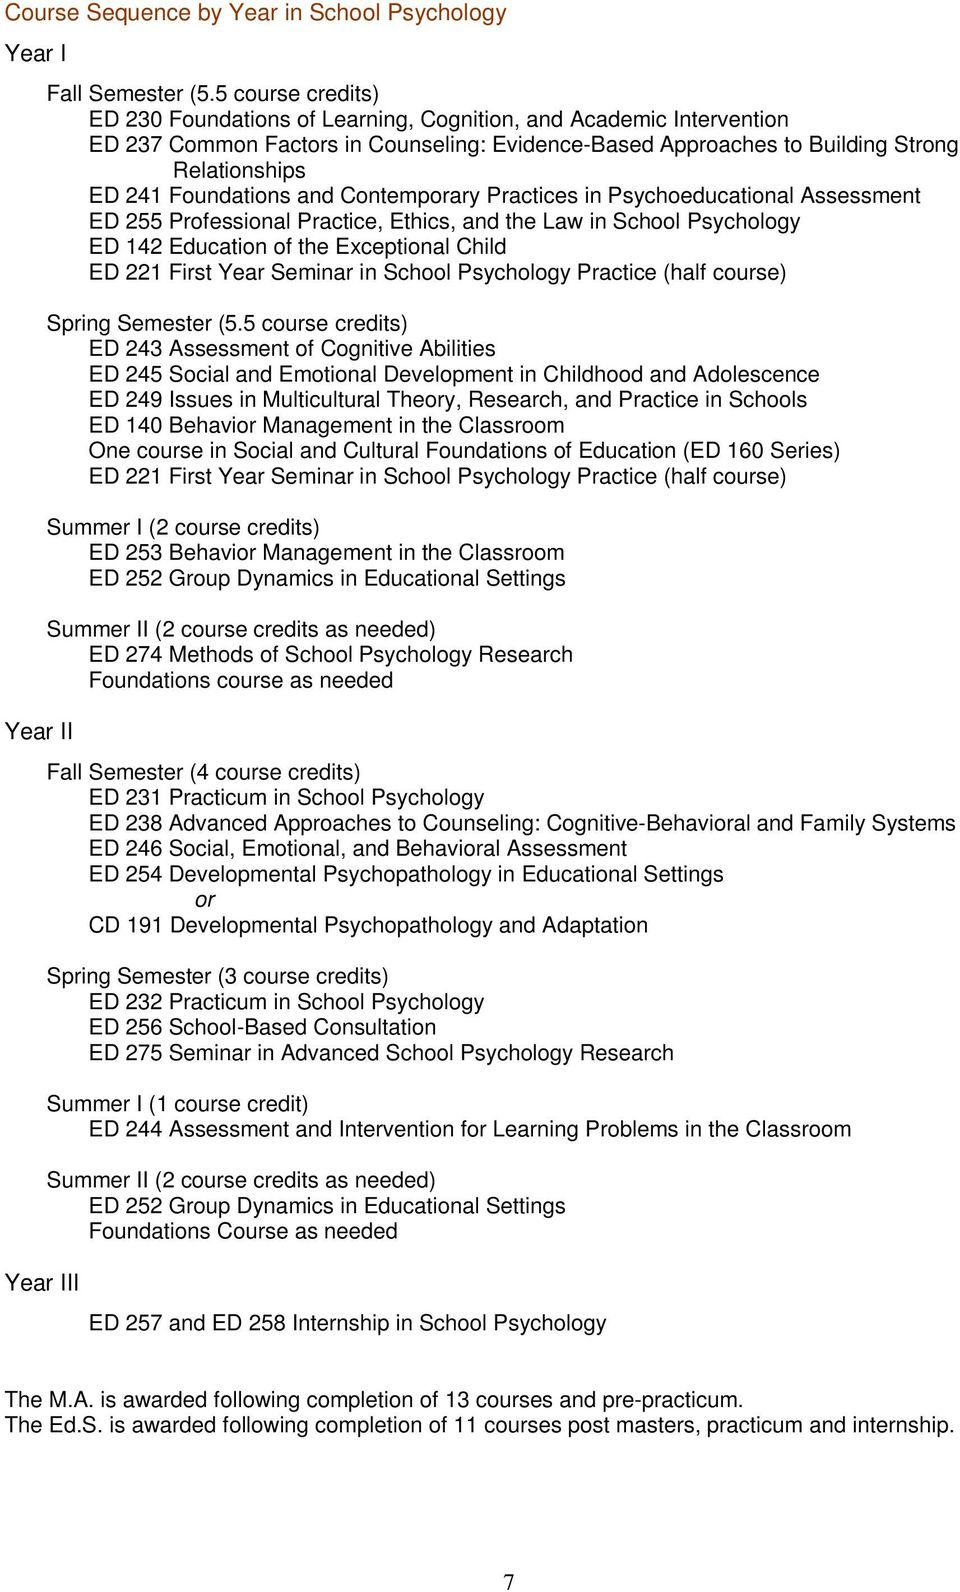 Foundations and Contemporary Practices in Psychoeducational Assessment ED 255 Professional Practice, Ethics, and the Law in School Psychology ED 142 Education of the Exceptional Child ED 221 First